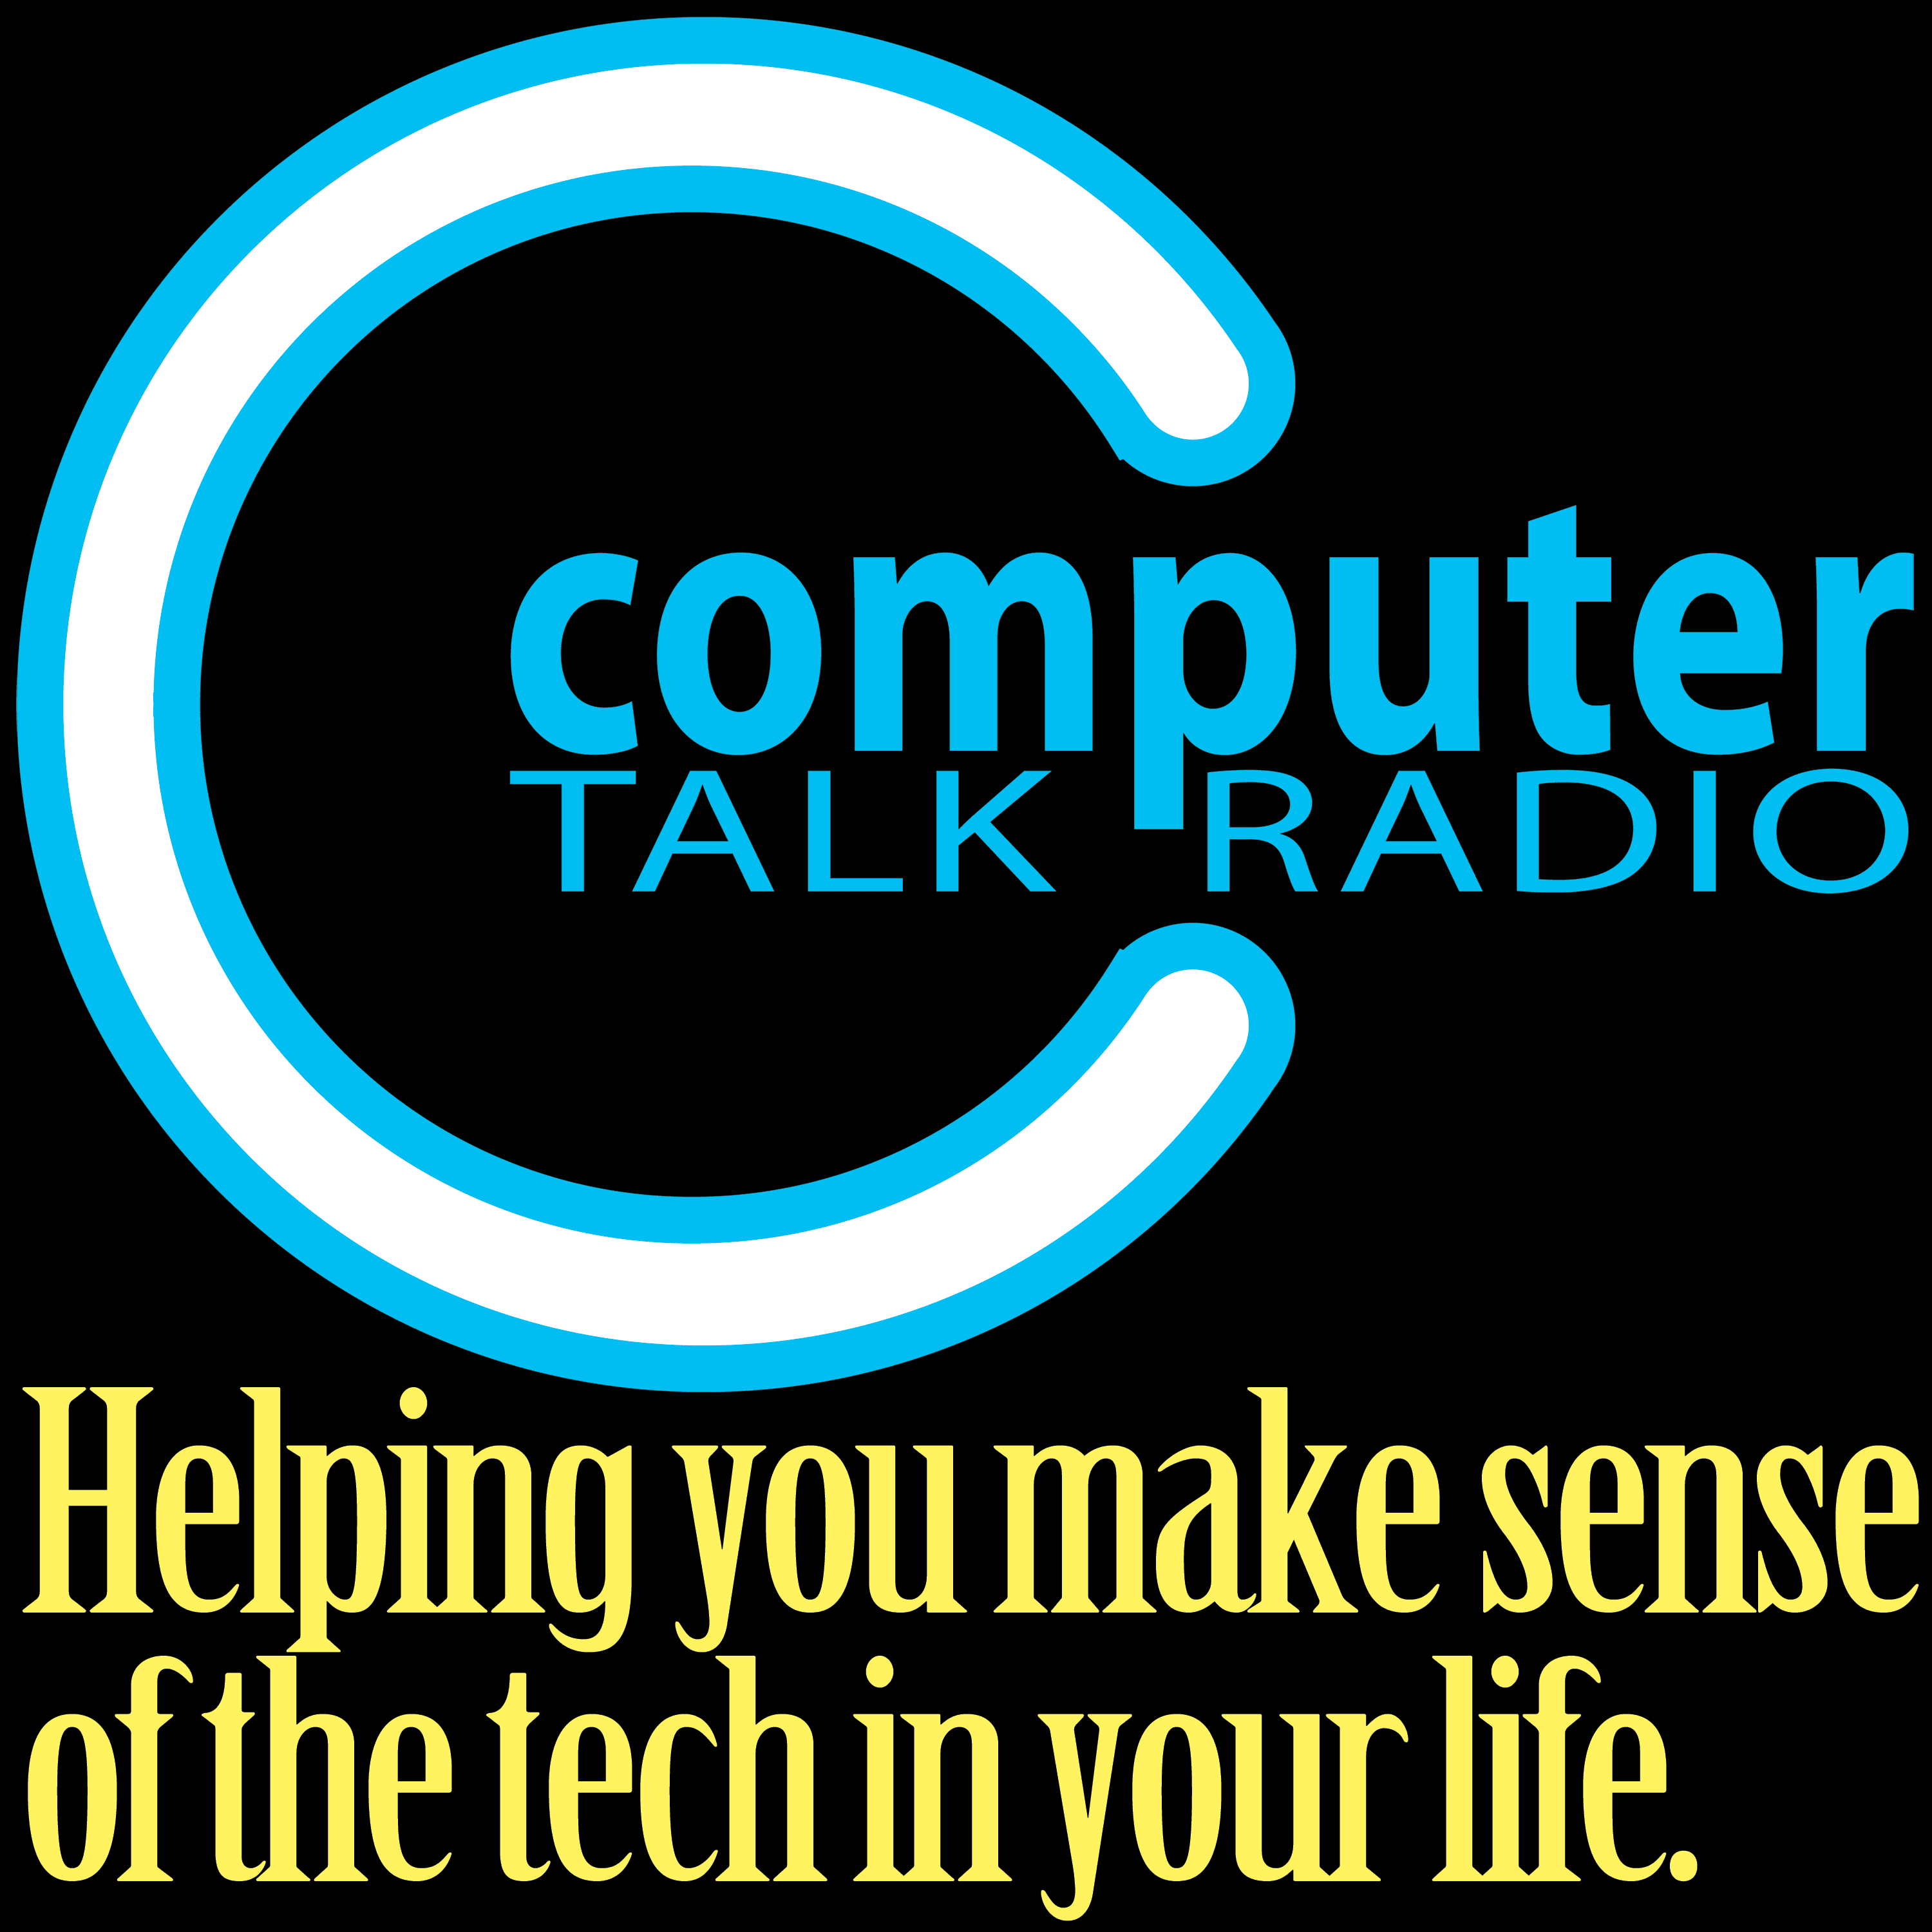 A highlight from Computer Talk Radio Broadcast 09-04-2021